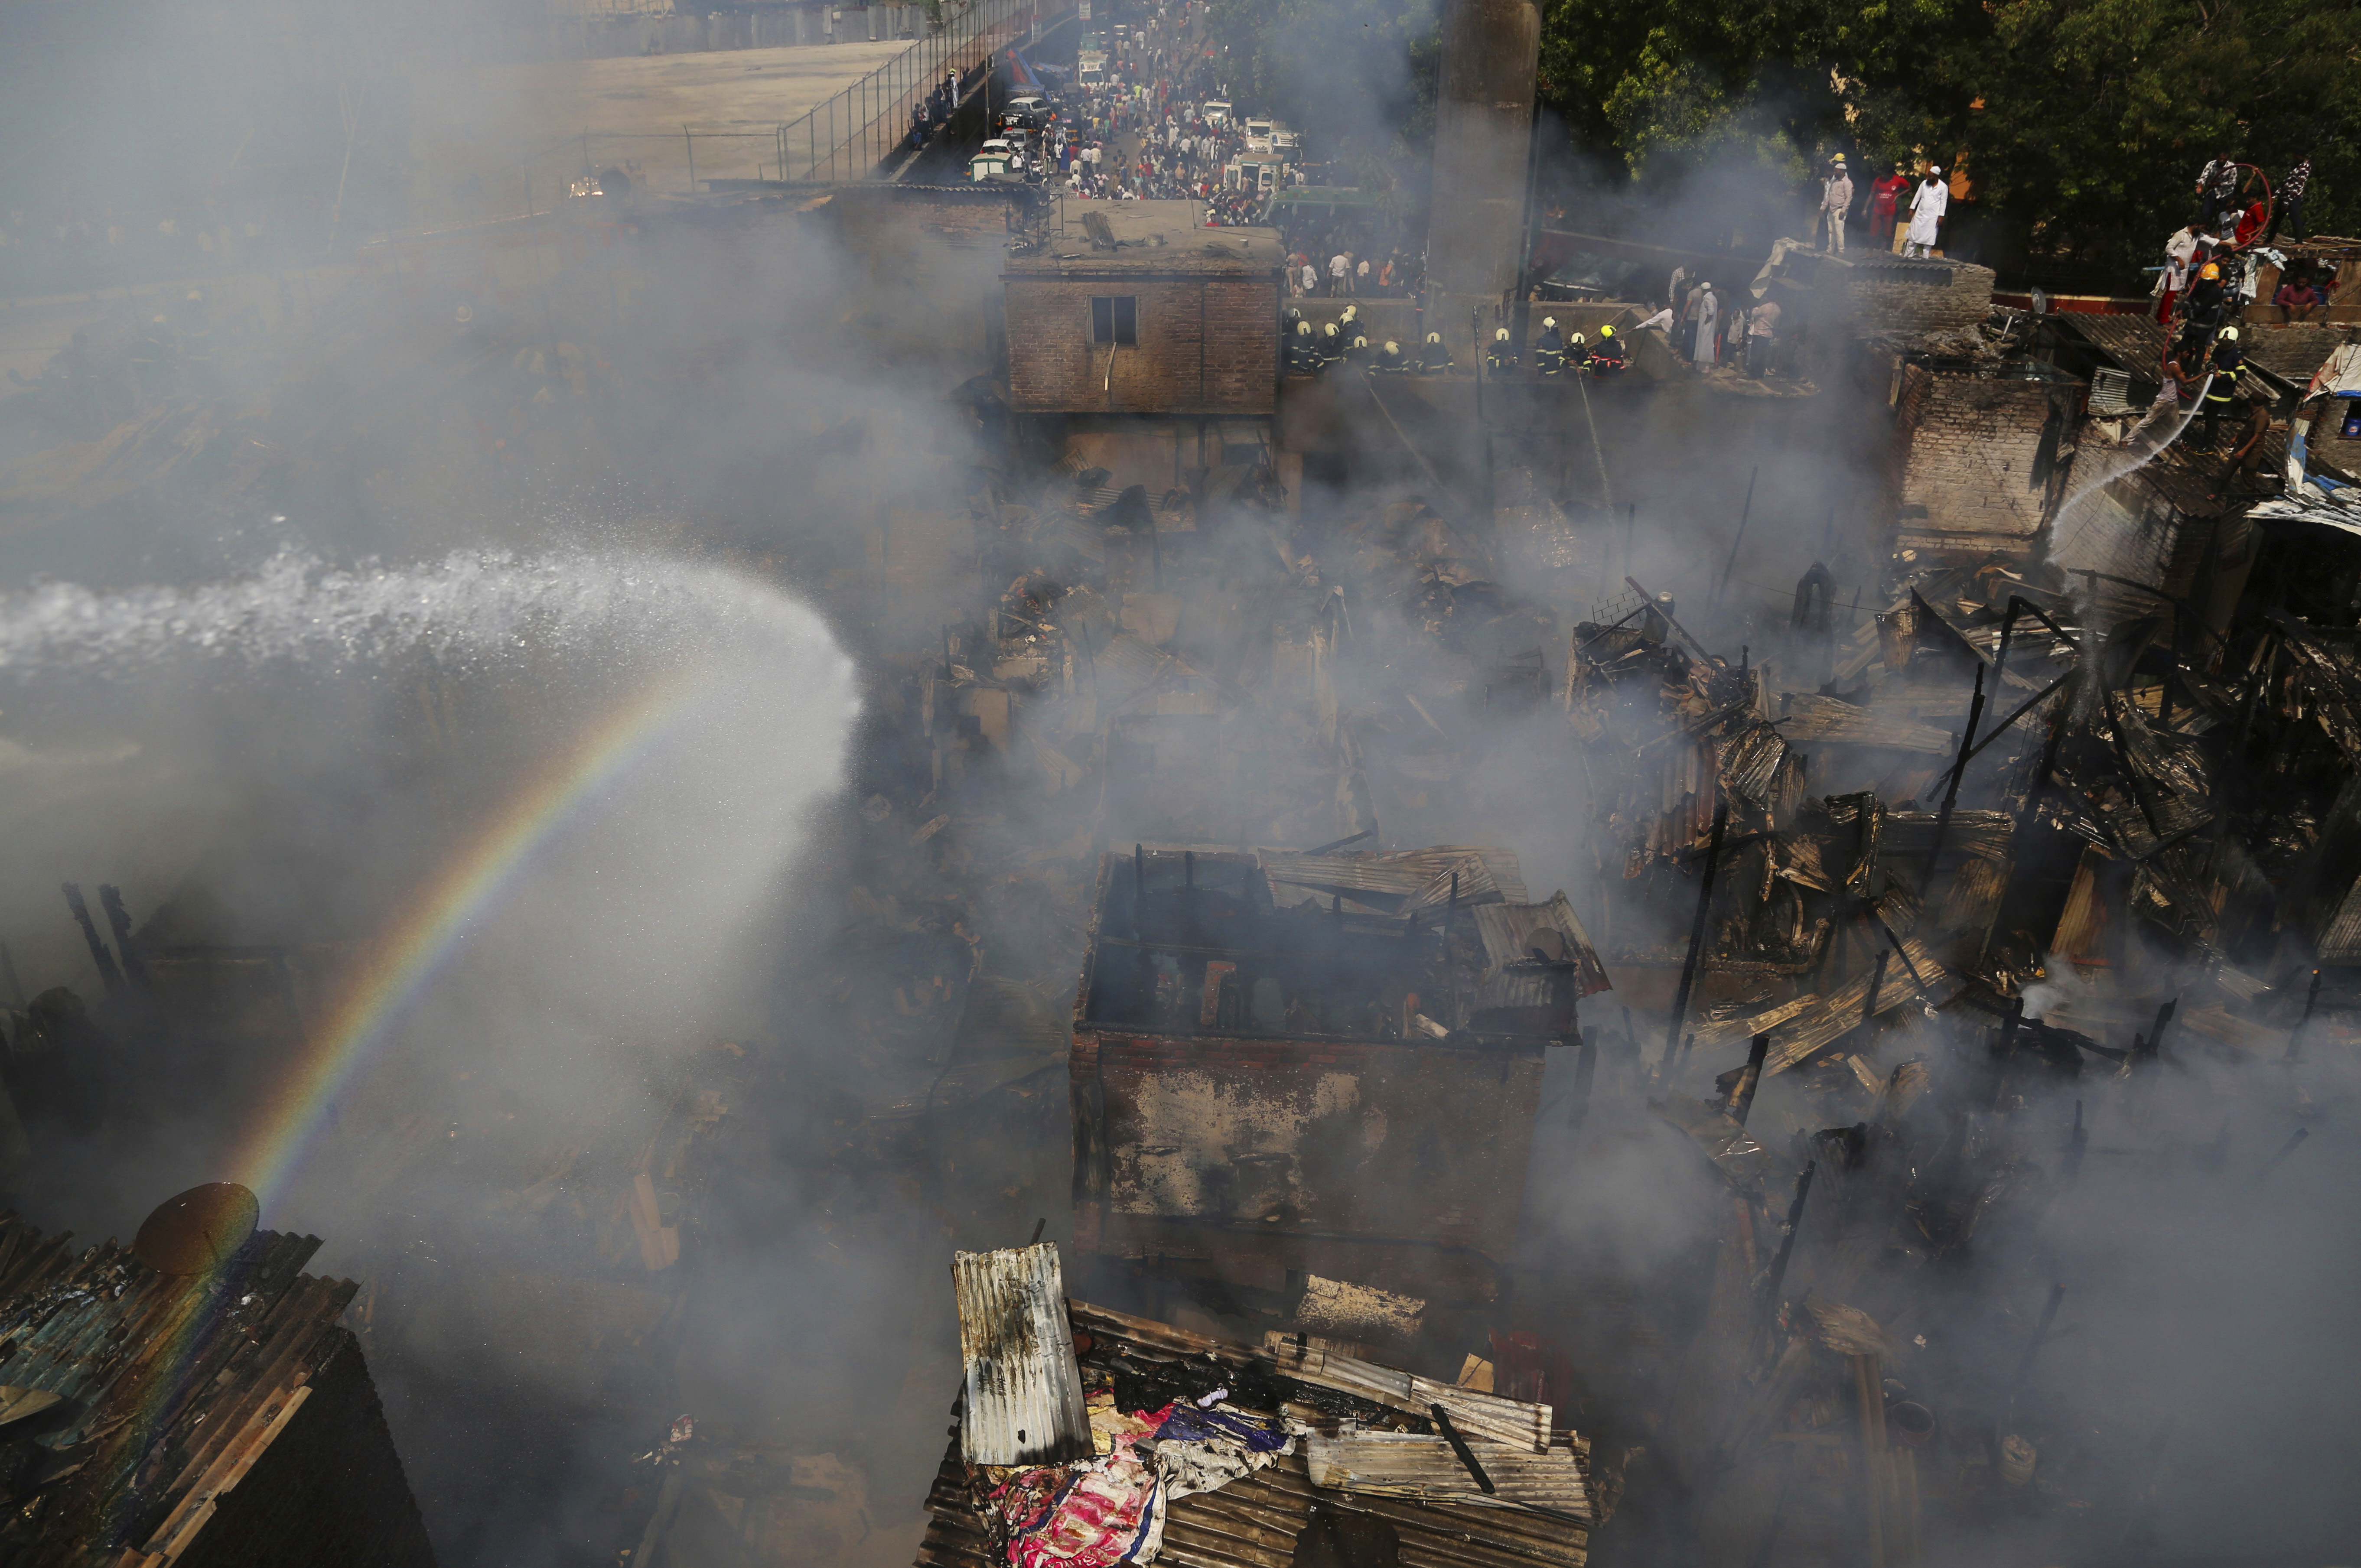 Firefighters try to douse the fire at a slum in Mumbai - AP